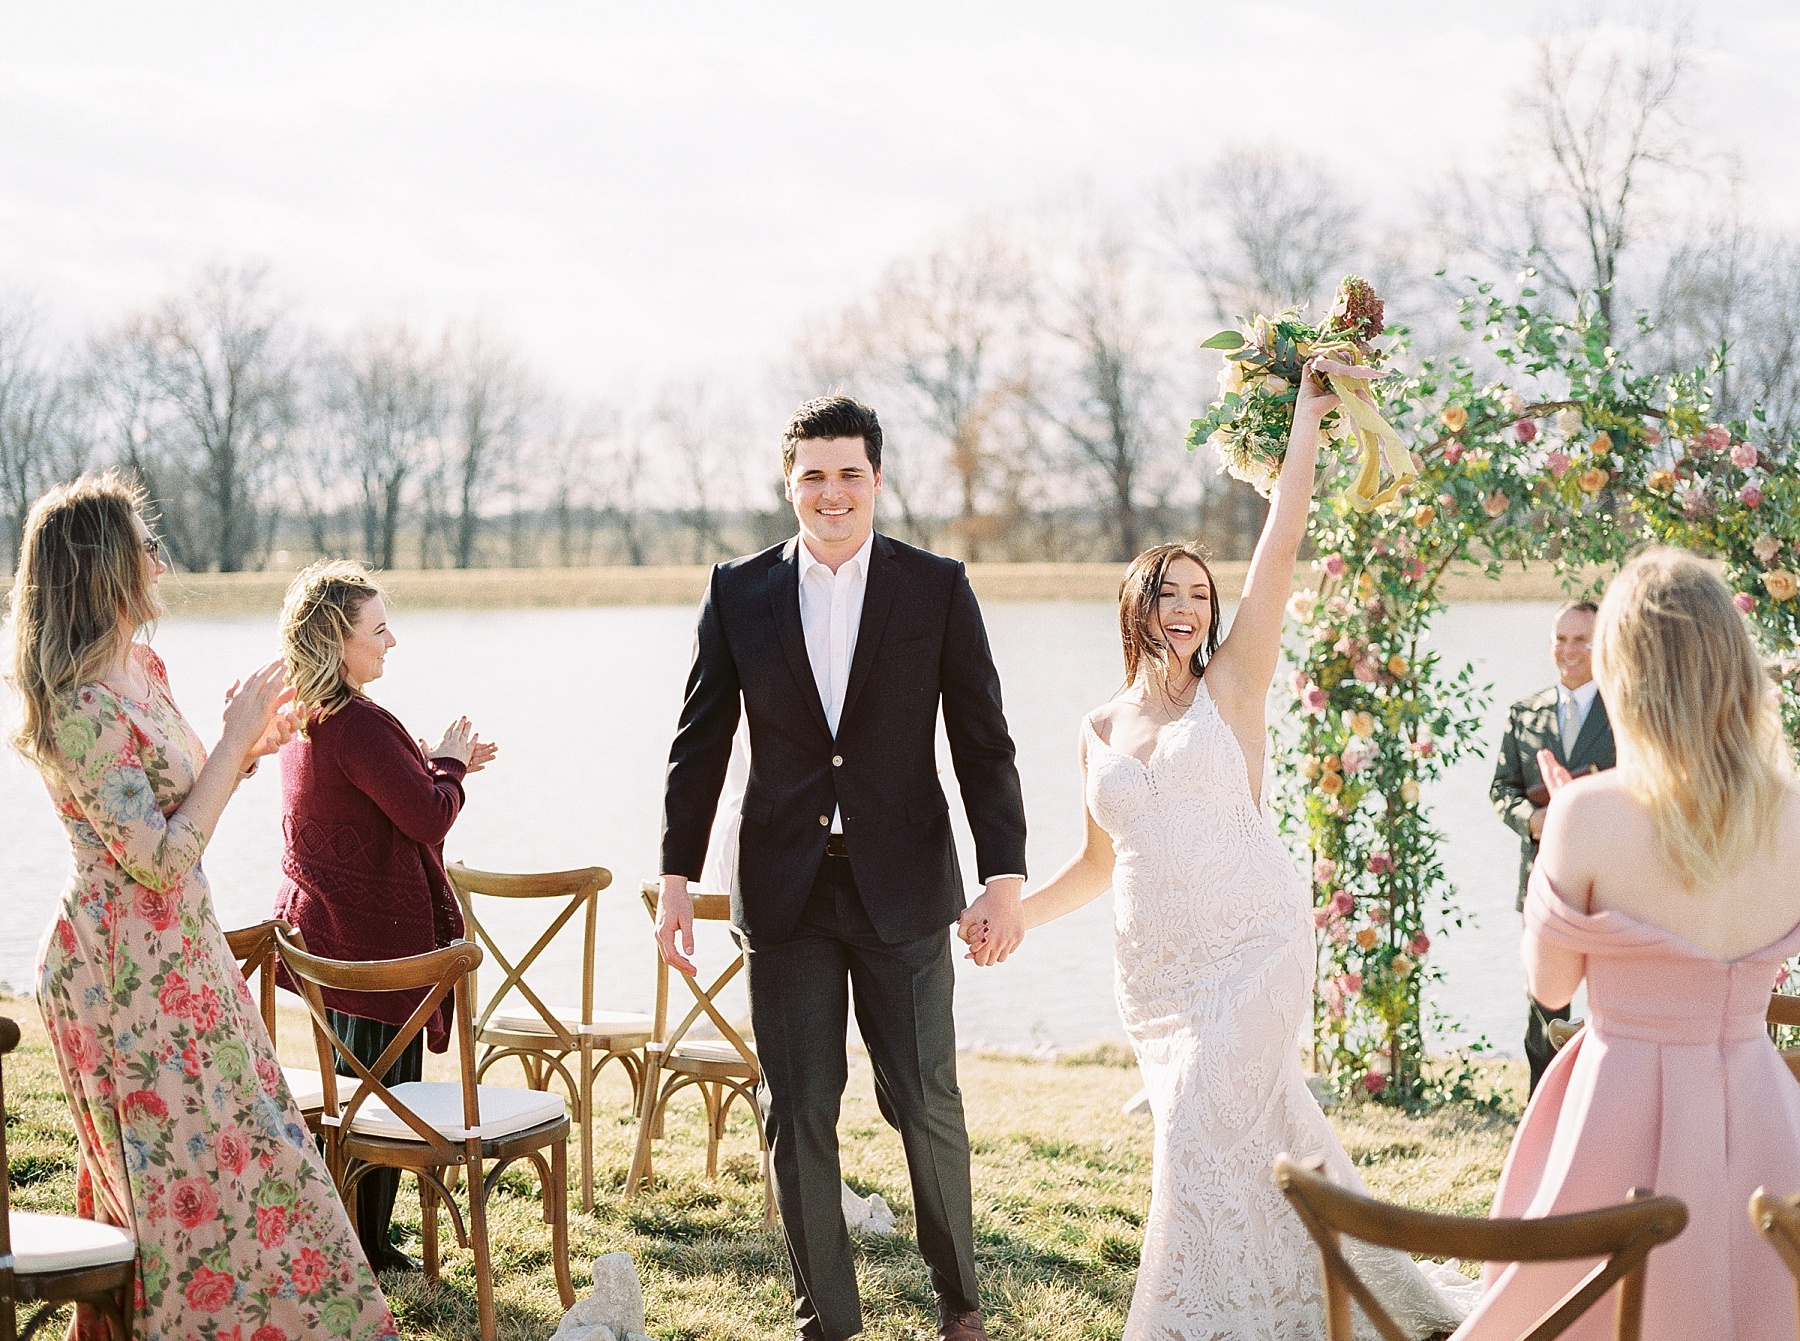 Lakeside Sunset Wedding with Magnificent Abundance of Blooms at Emerson Fields by Kelsi Kliethermes Photography Best Missouri and Maui Wedding Photographer_0014.jpg